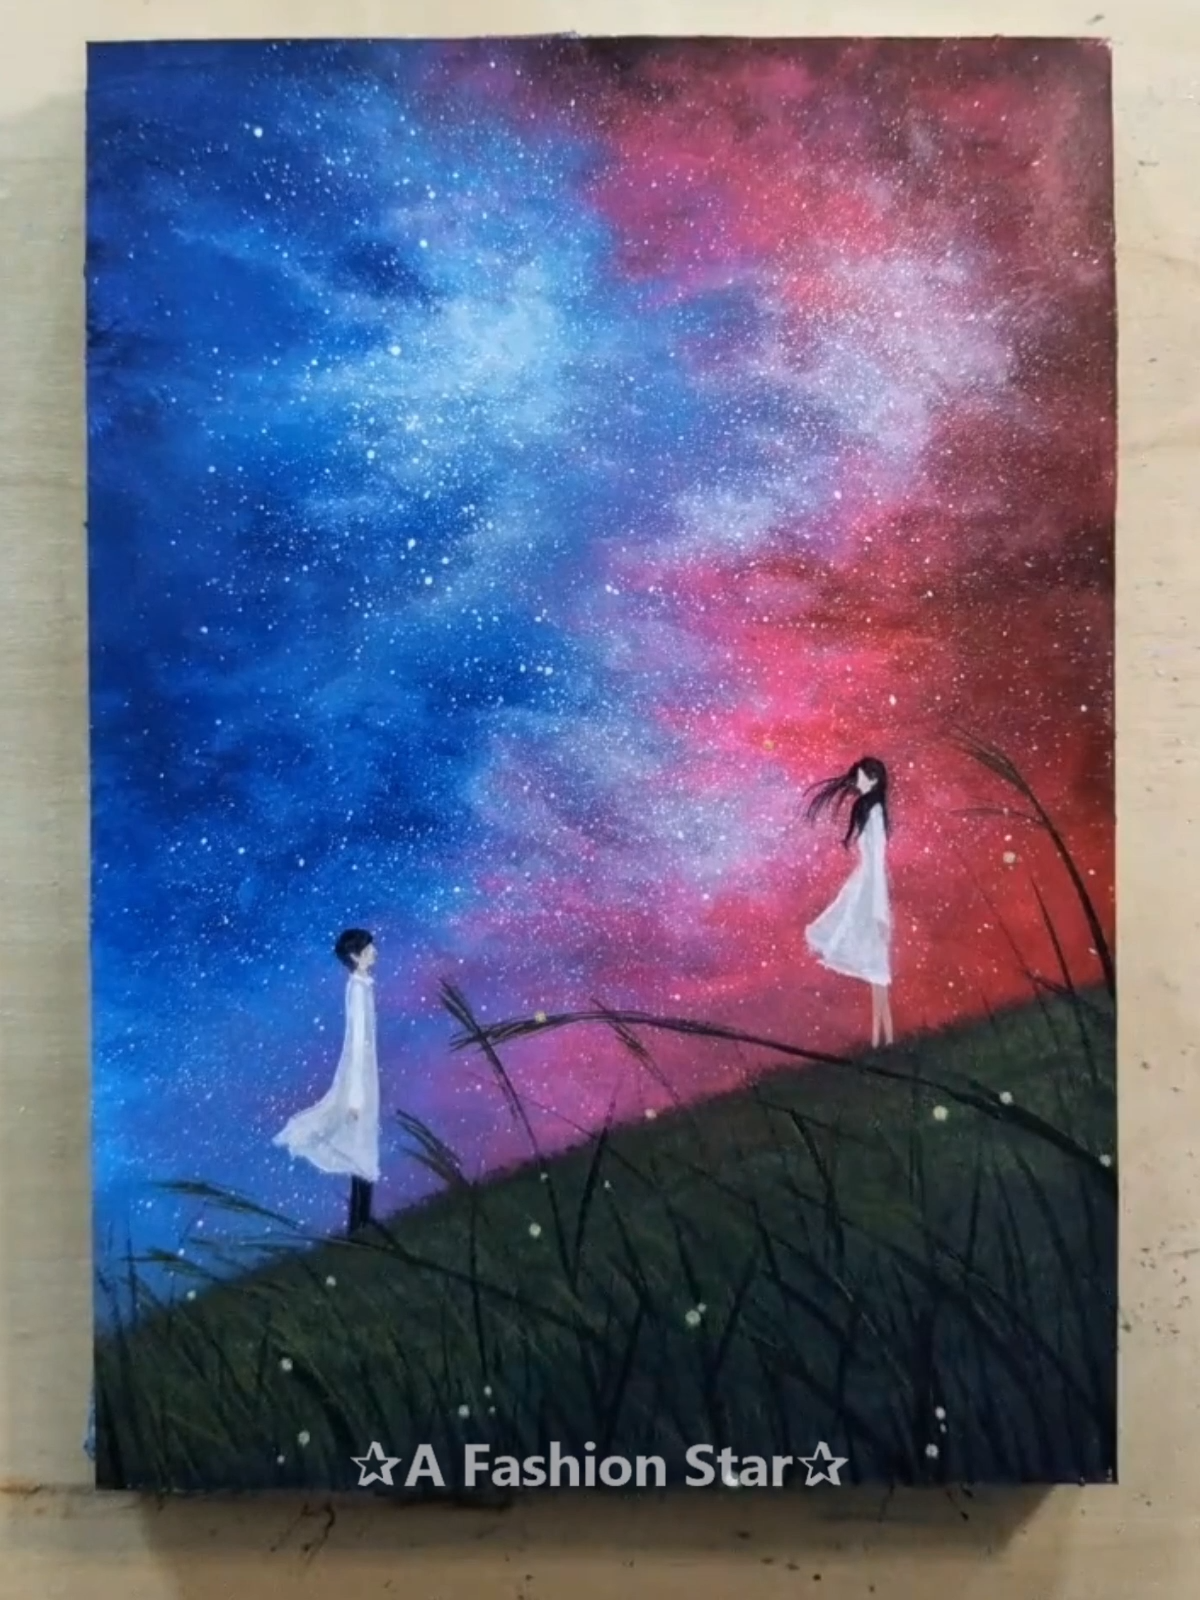 Are You Looking For Some Easy Painting For Home Decor The Art Of Starry Sky Painting Is Very Popular In Recent Years Paint Painting Art Drawings Sky Painting